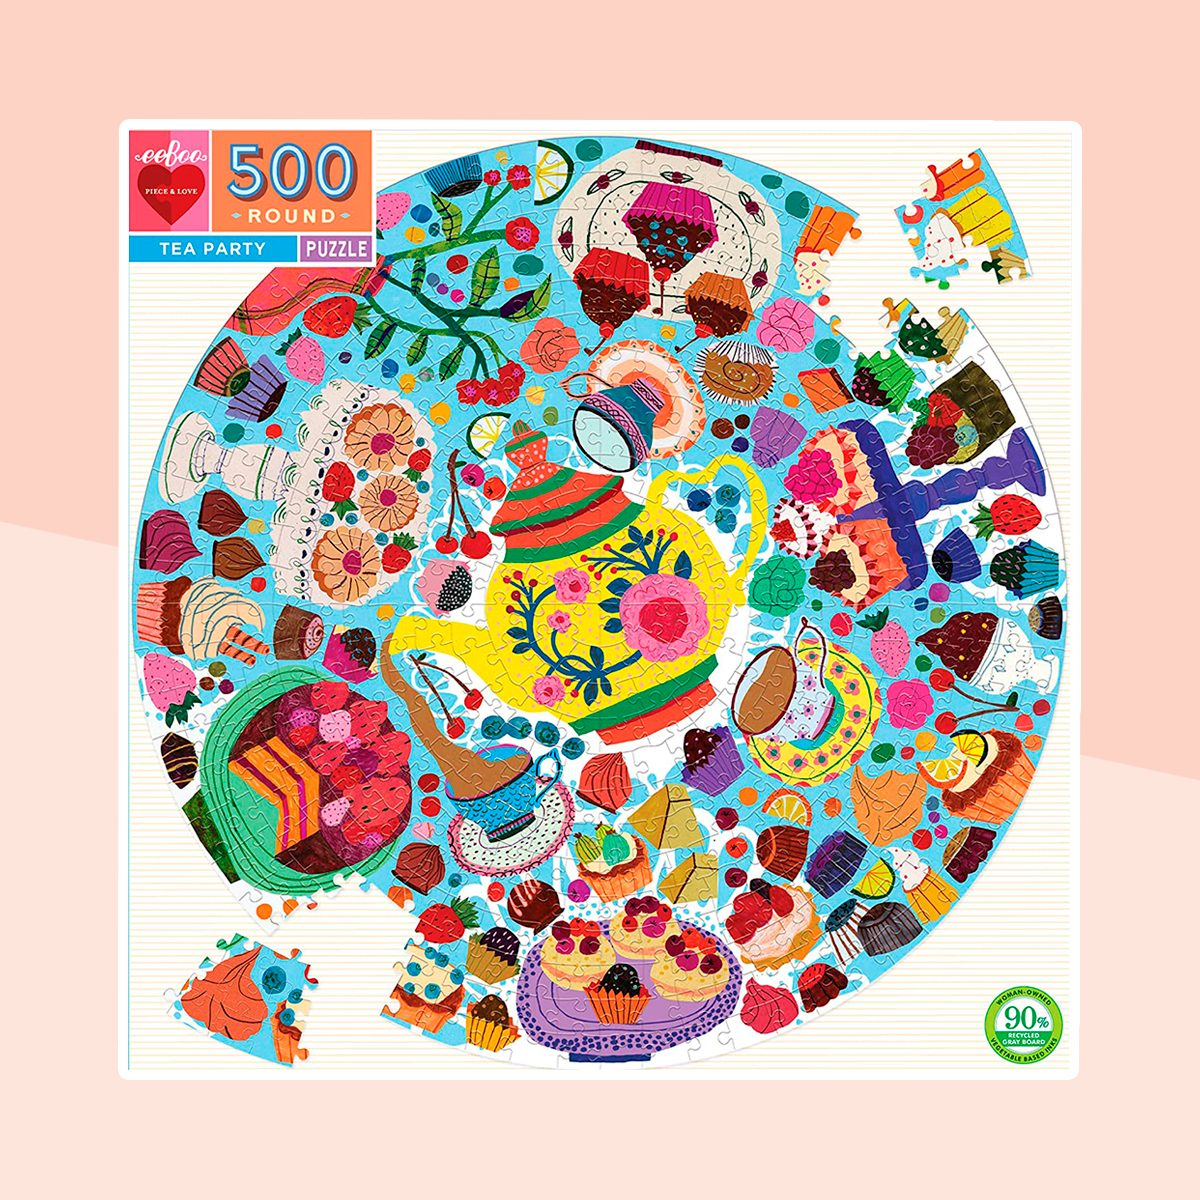 Tea Party Round Jigsaw Puzzle for Adults, 500 Pieces